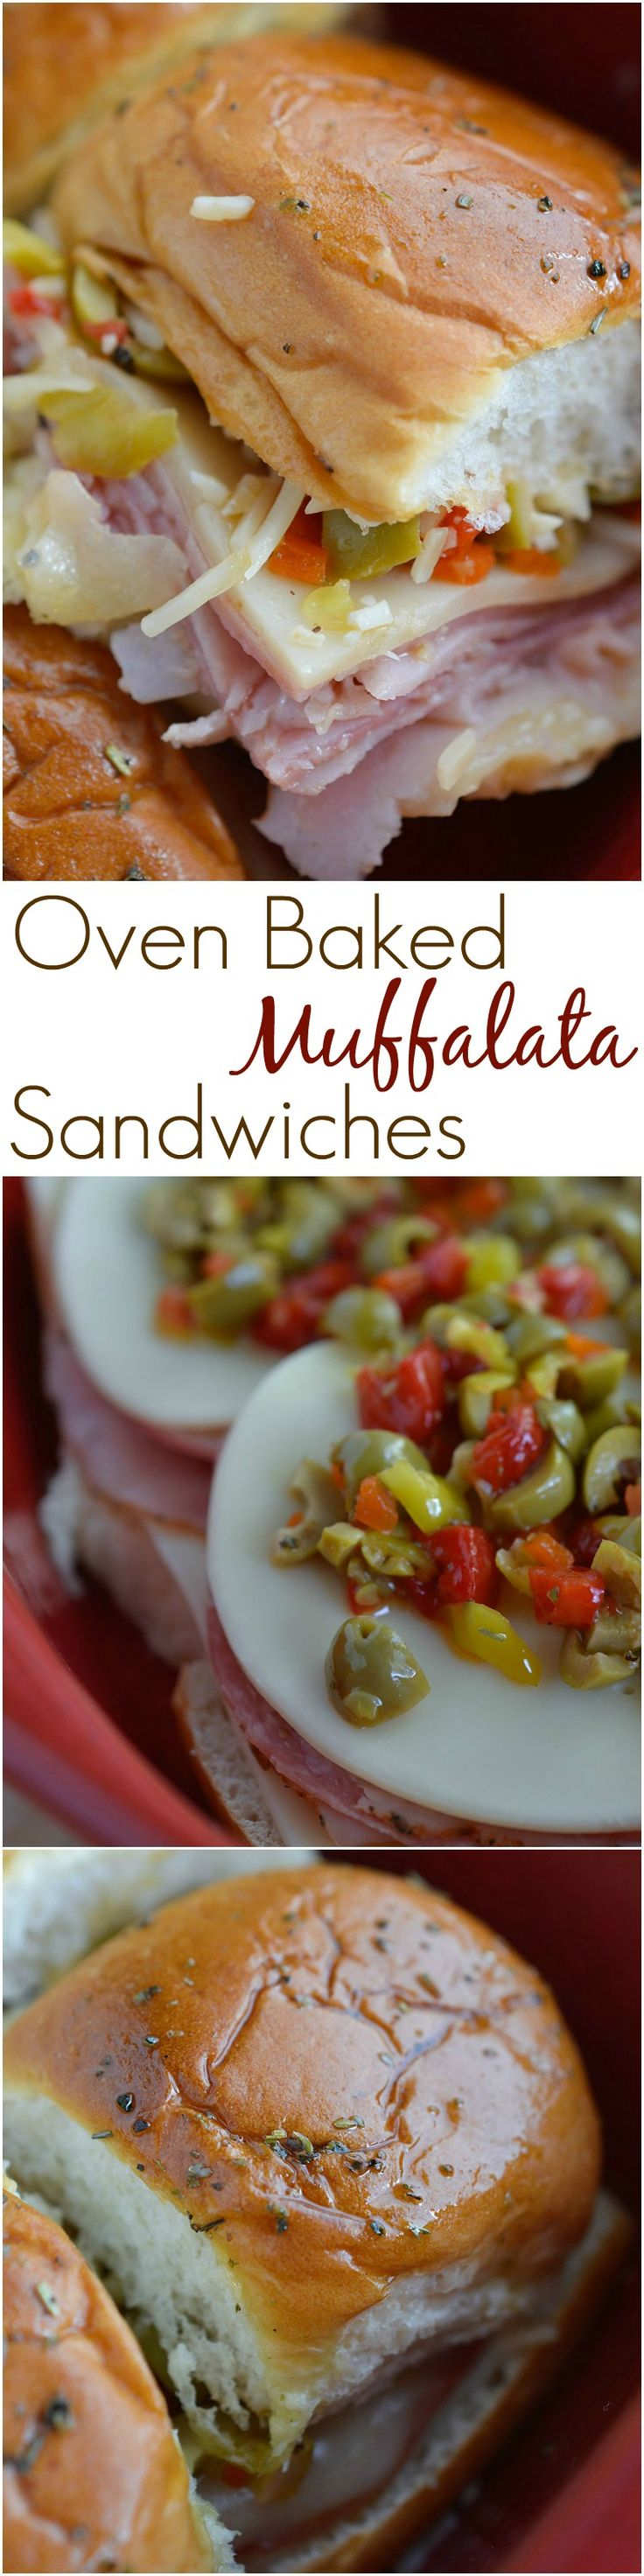 Muffalata Oven Baked Sandwiches - This Italian Sandwich is loaded with meat, cheese and olive salad. A New Orleans favorite, baked in the oven and perfect for feeding a crowd! #Dinner Recipe - wonkywonderful.com